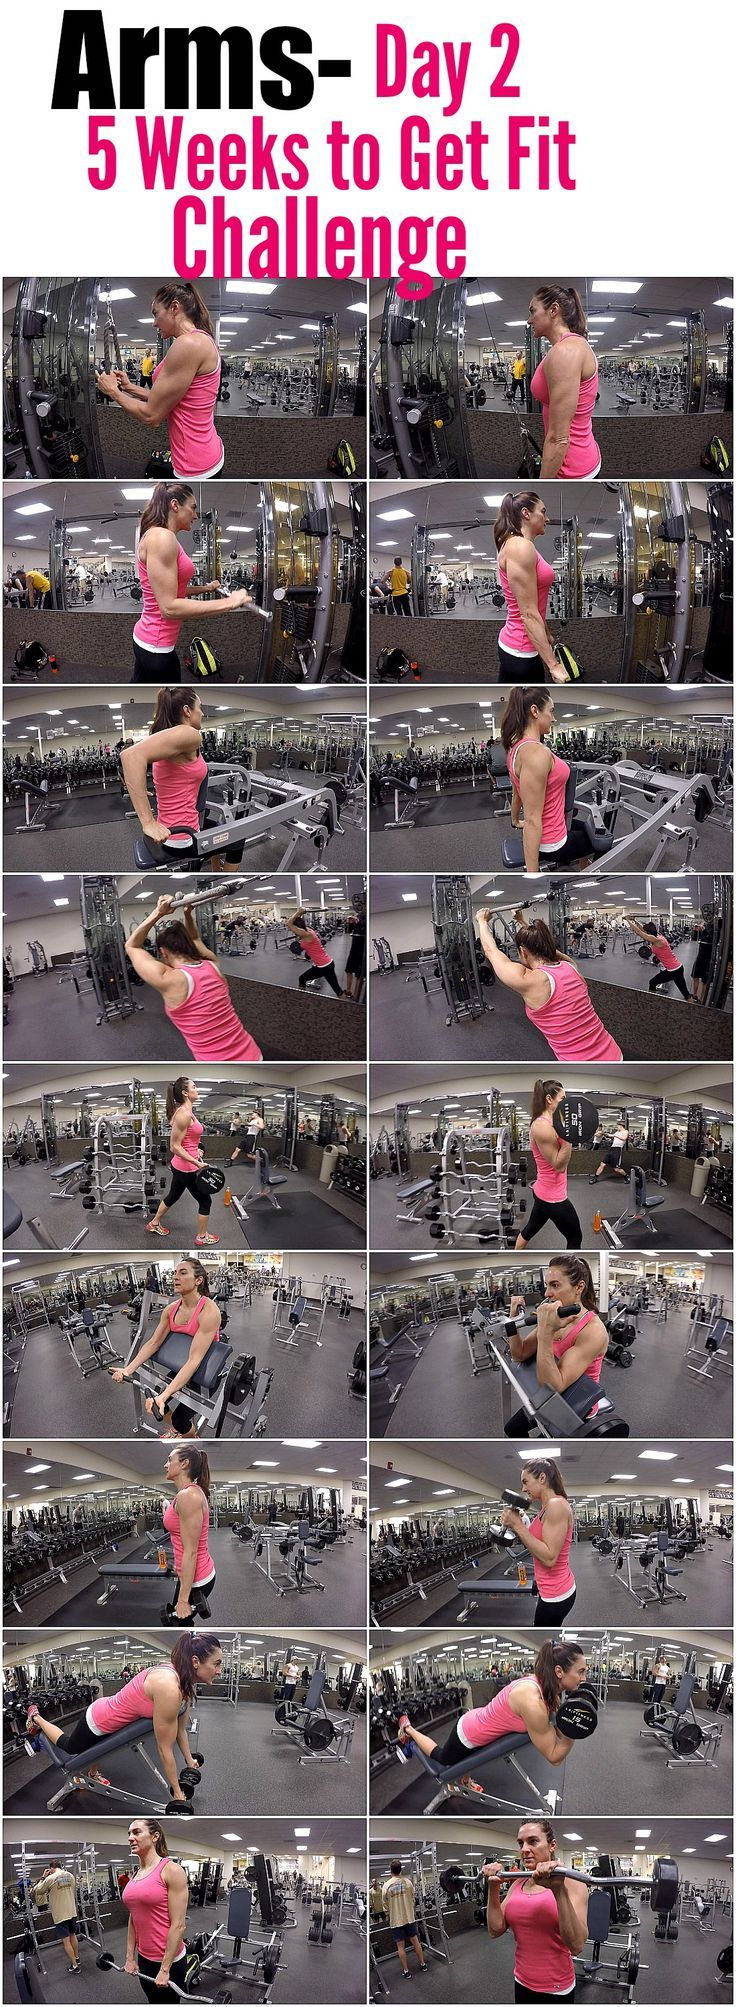 Circuit Training Workouts - Overload Circuits